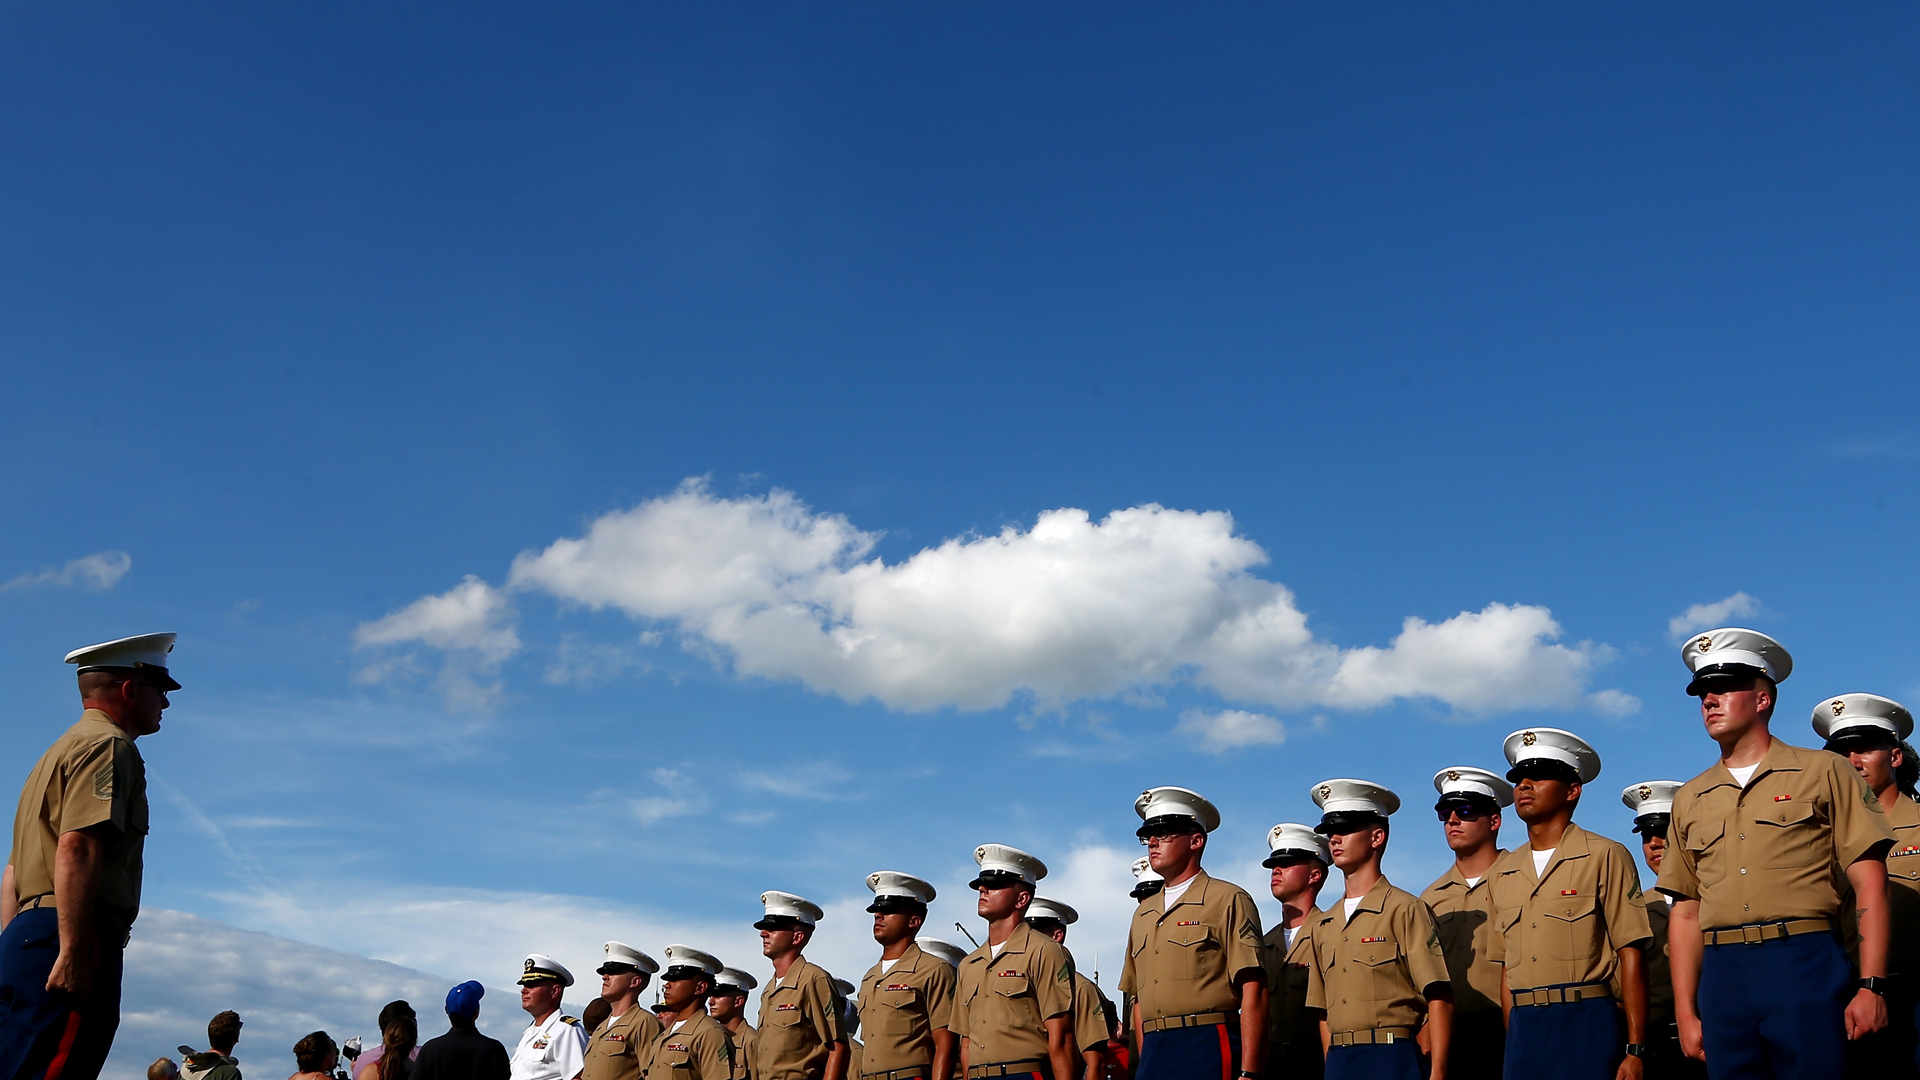 Members of the U.S. Marine Corp stand at attention on May 28, 2017 in Charlotte, North Carolina. (Credit: Sarah Crabill/Getty Images)